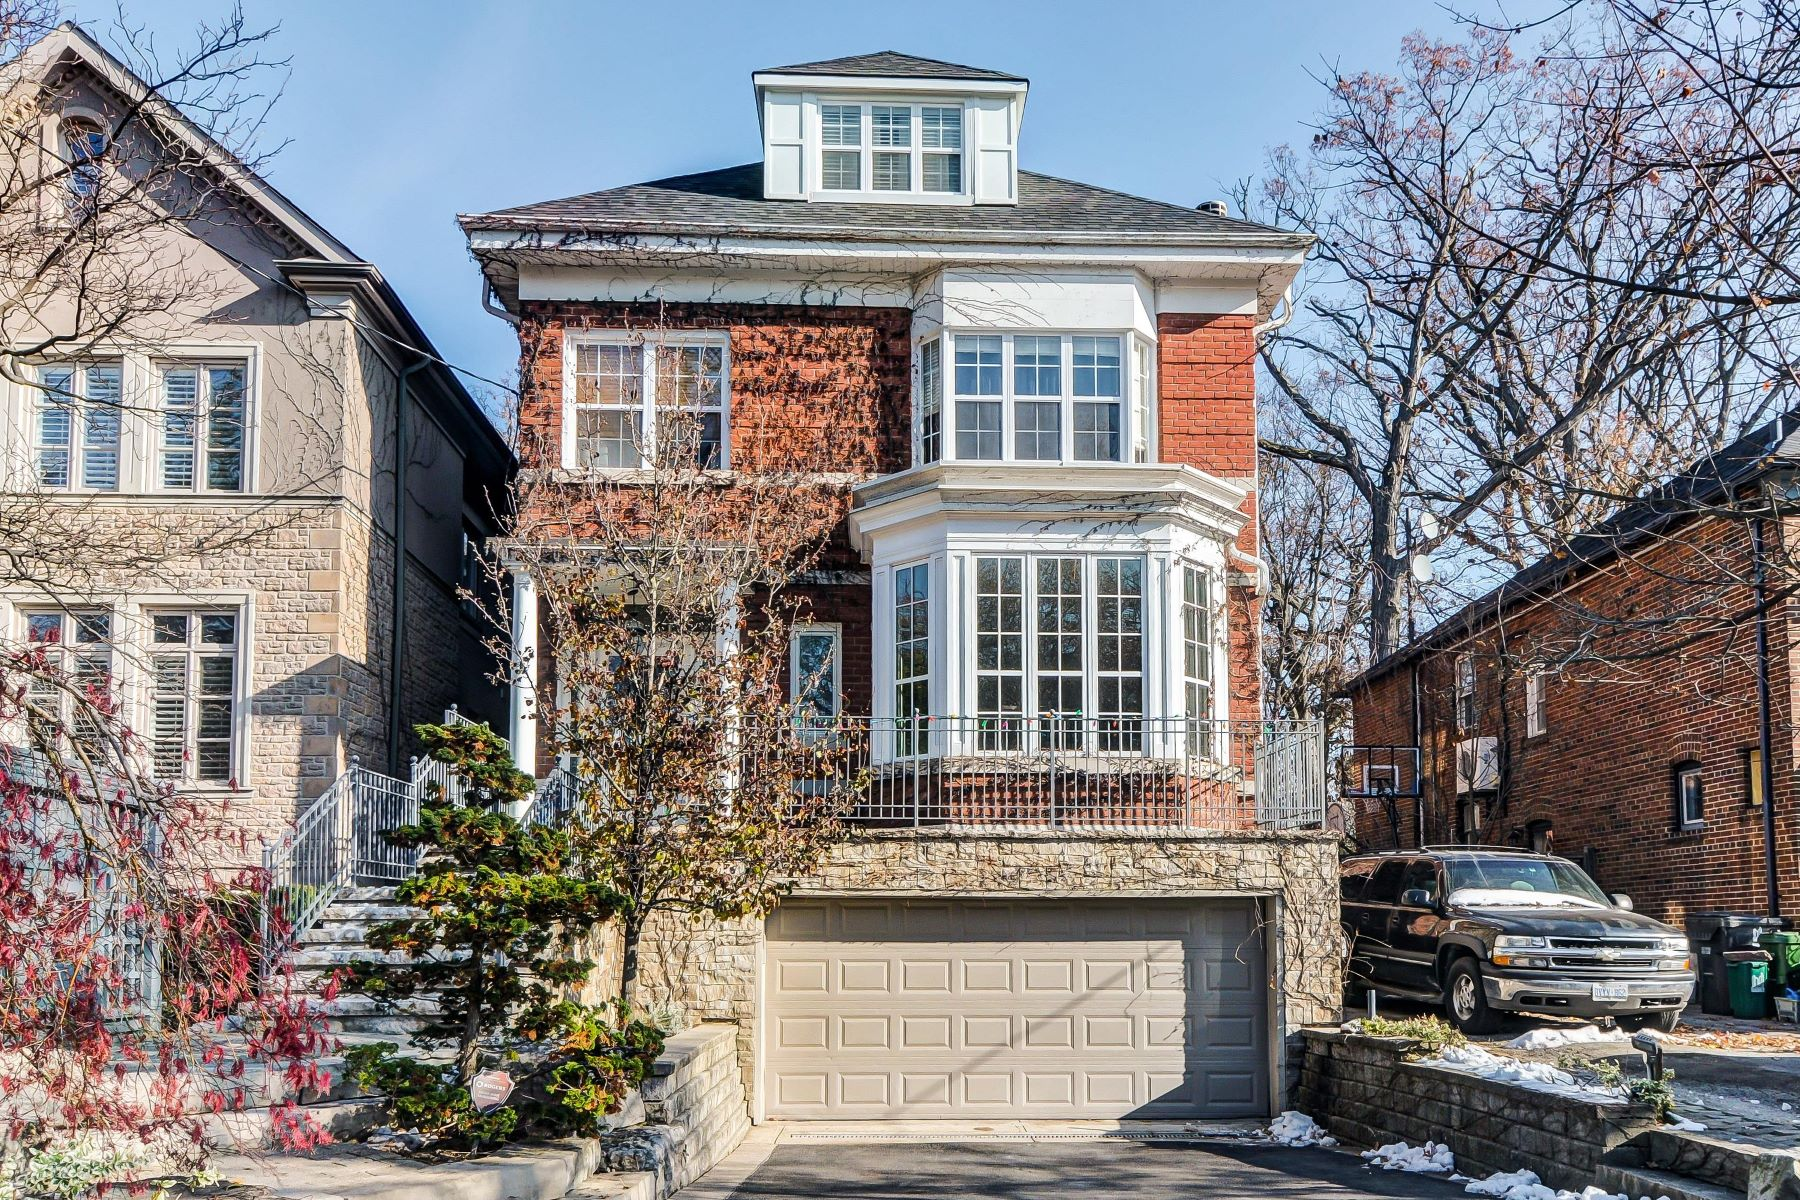 Single Family Home for Sale at Casa Loma Awaits 91 Lyndhurst Ave Toronto, Ontario M5R 2Z8 Canada